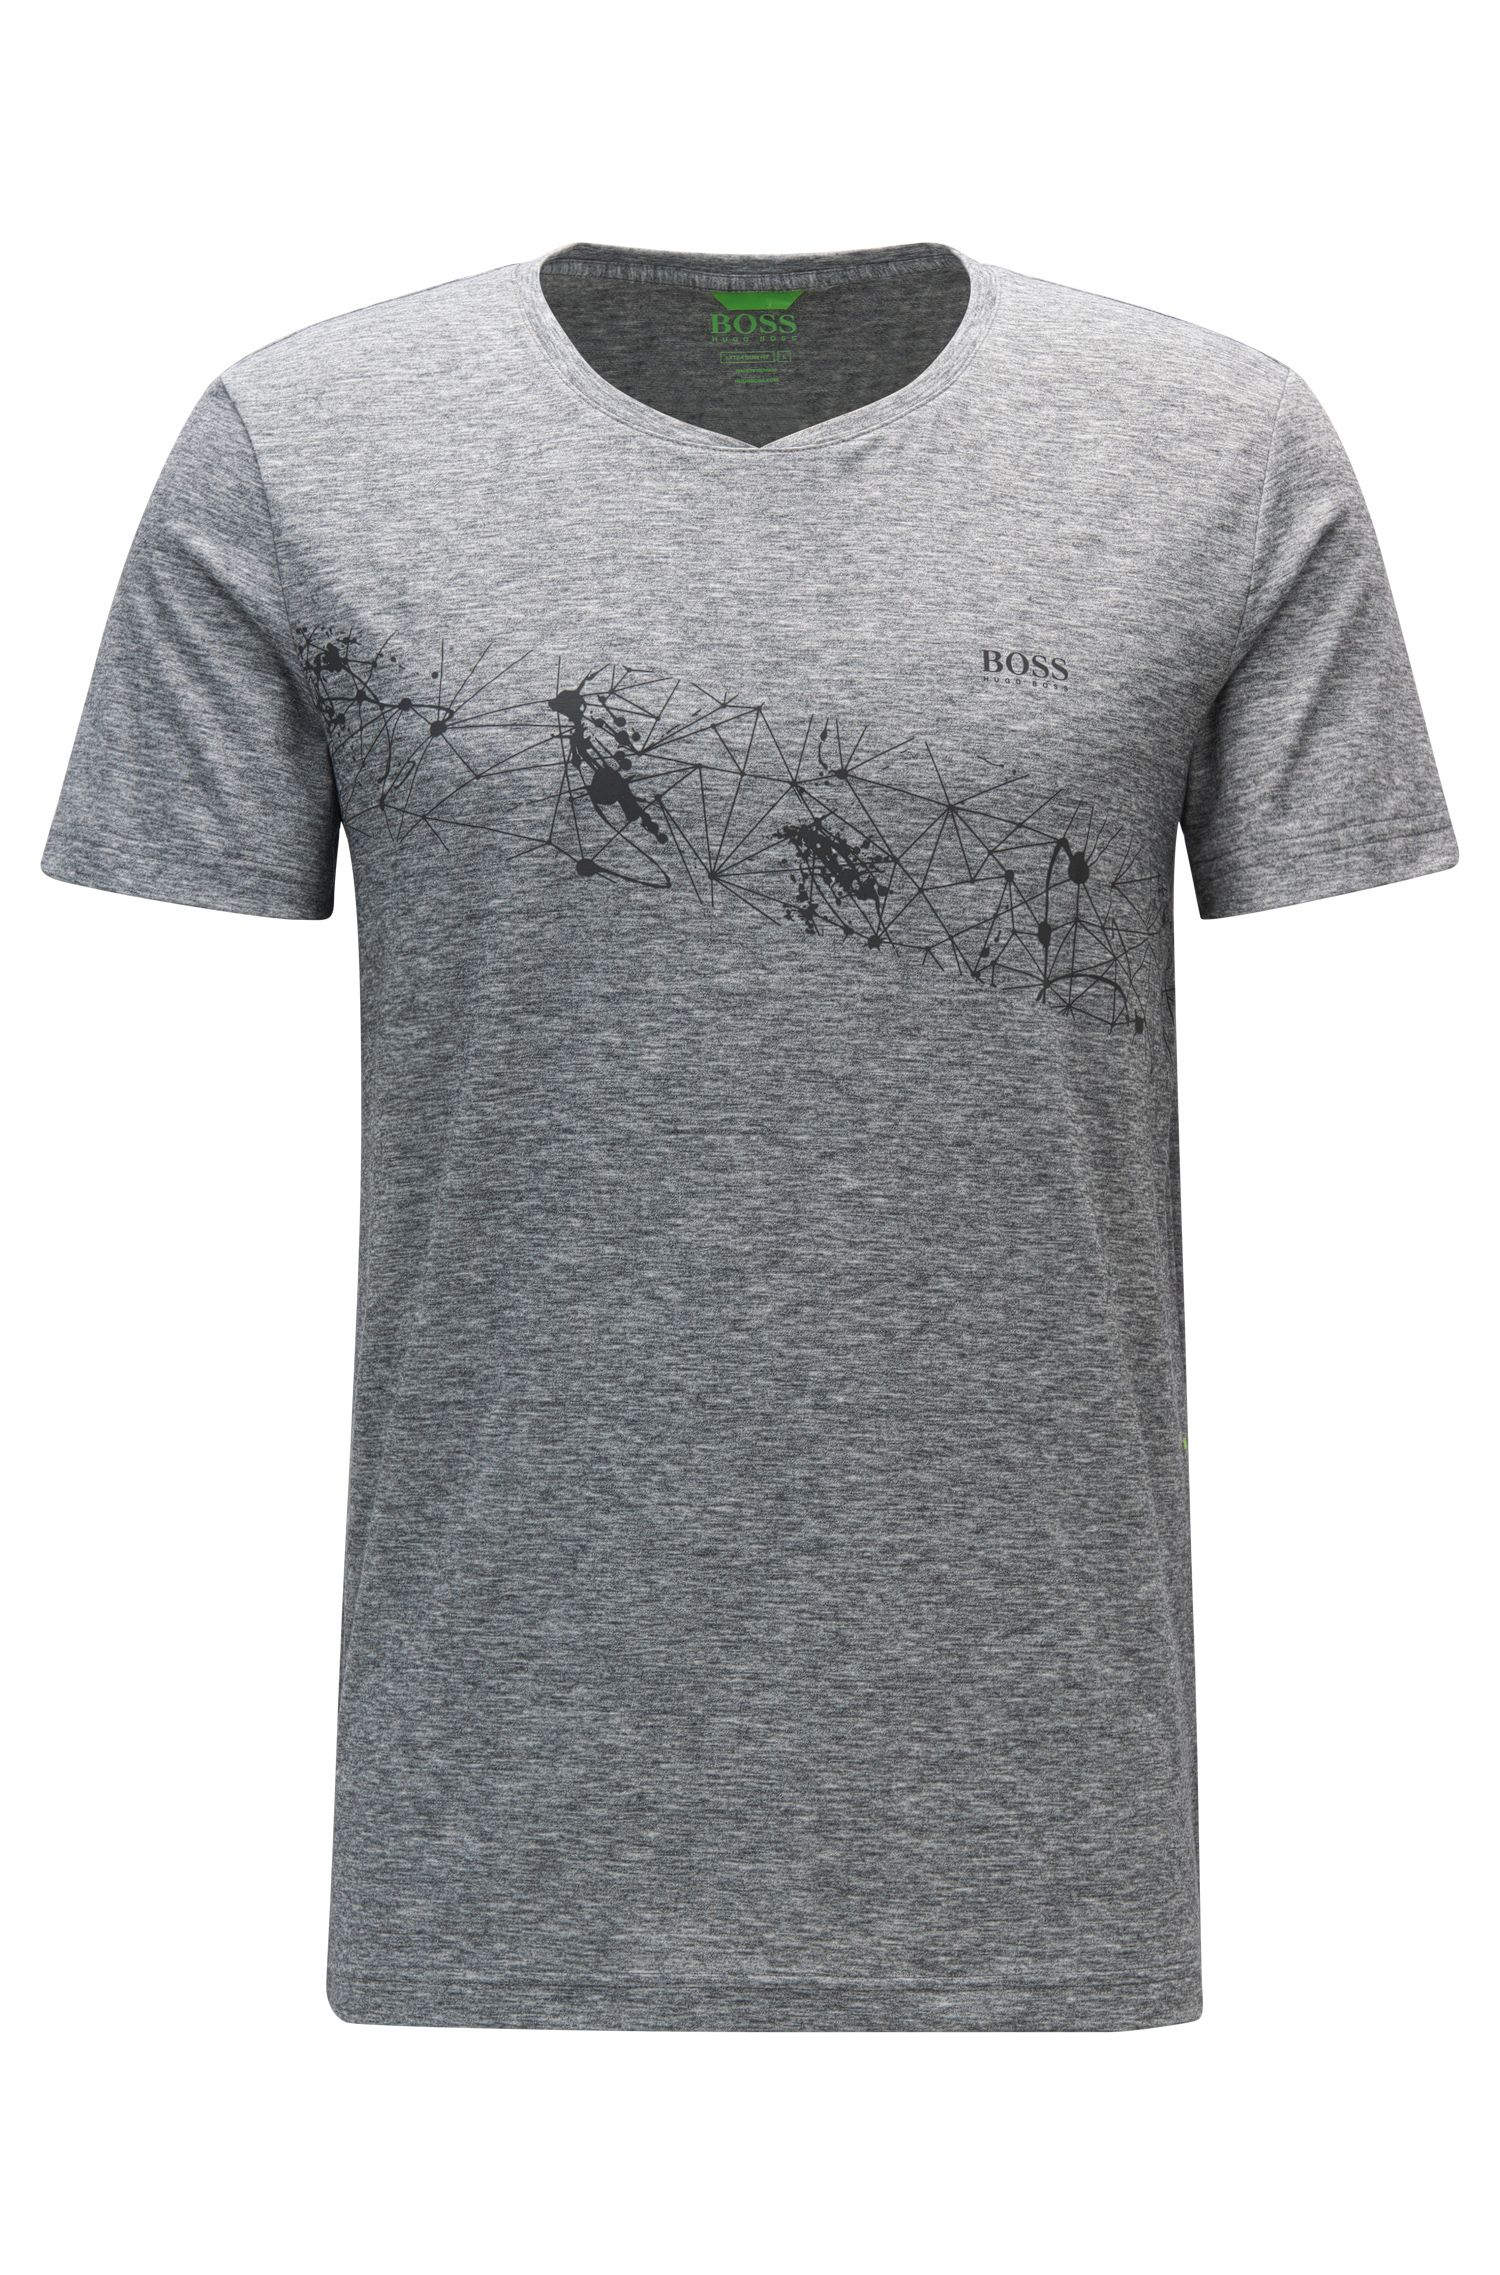 Extra-Slim-Fit T-Shirt aus Material-Mix